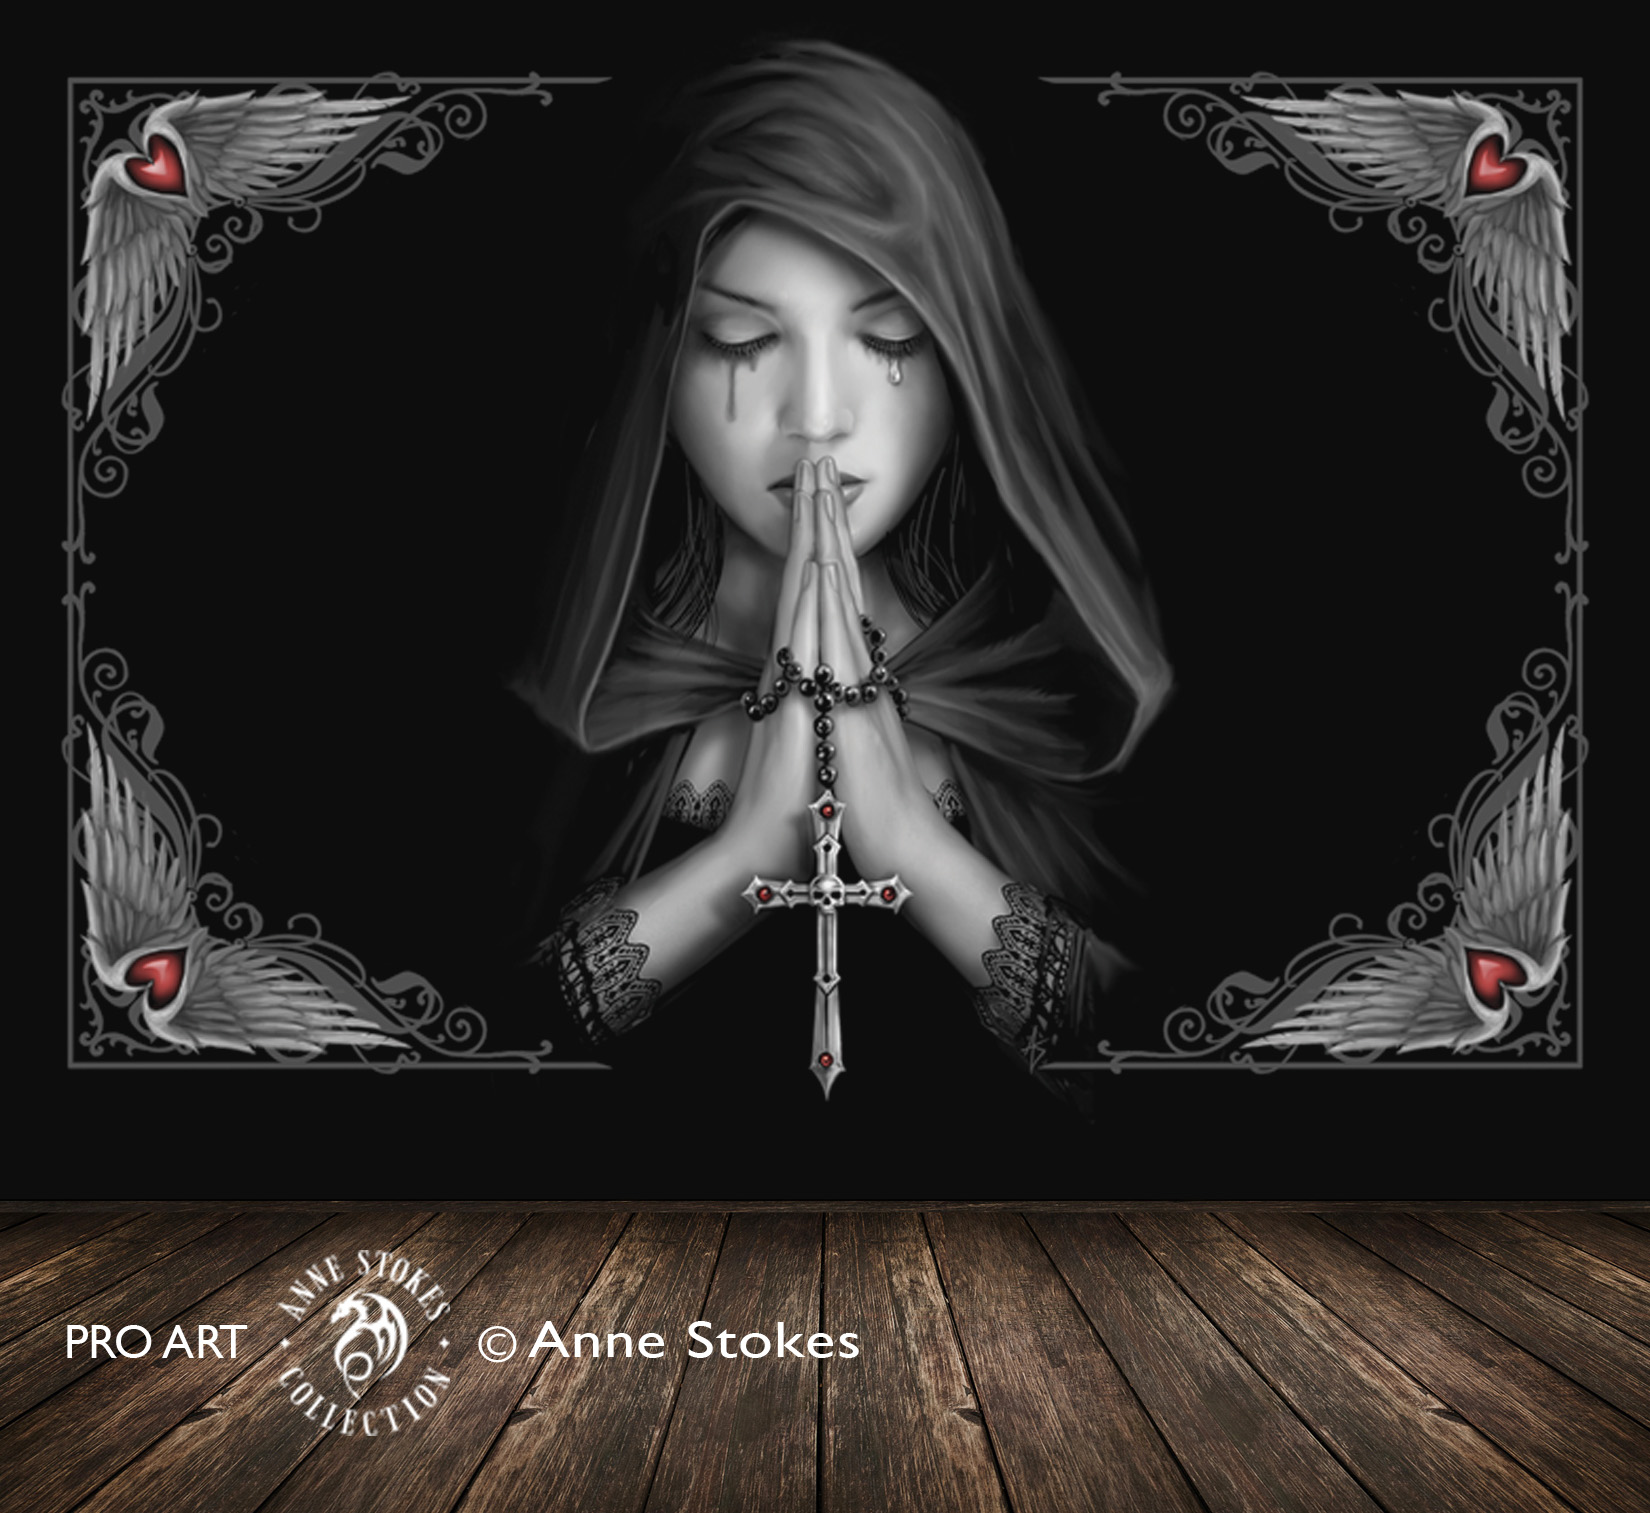 anne stokes wallpaper for - photo #20